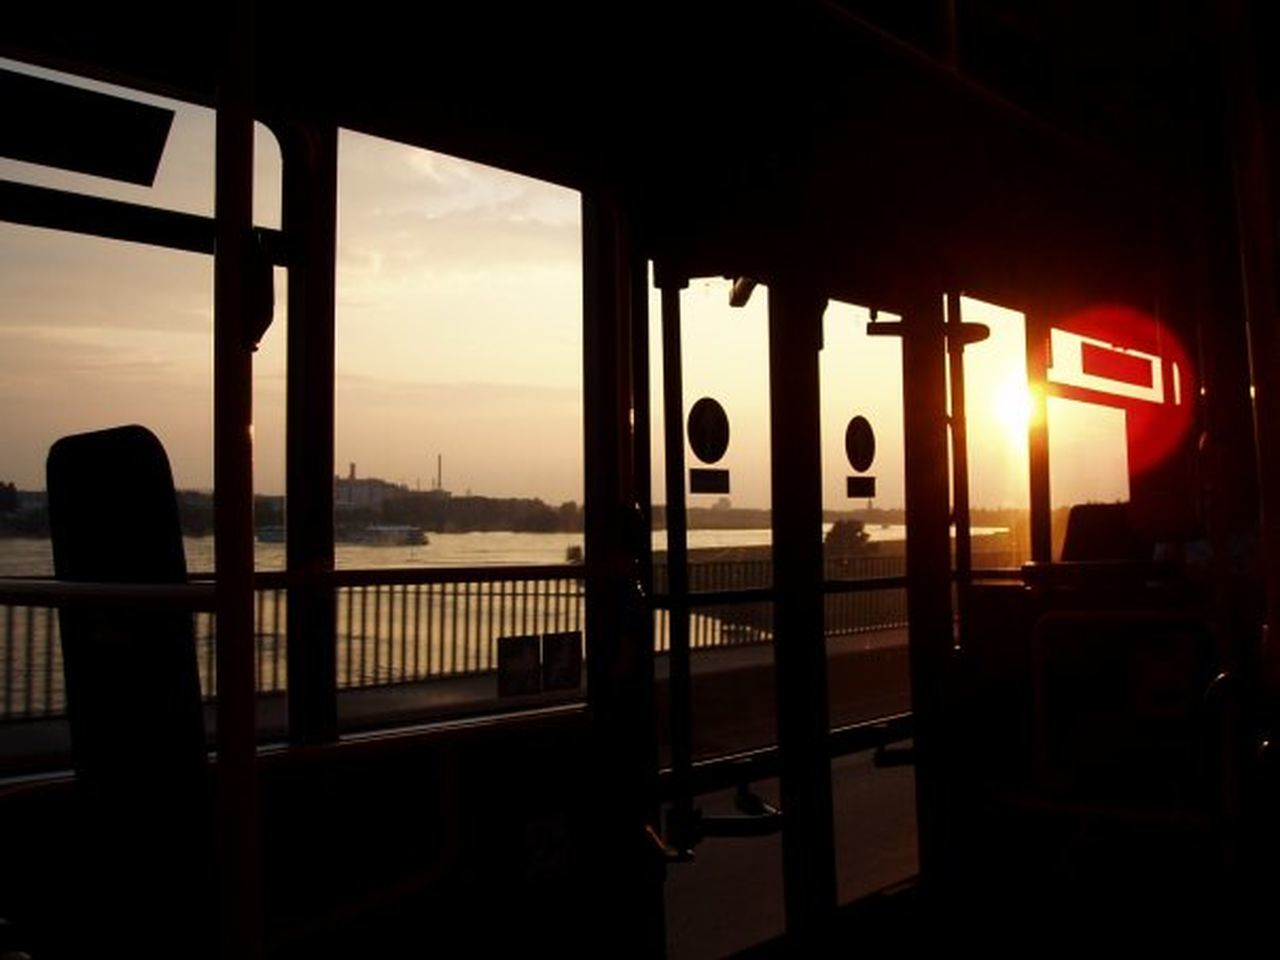 a view on my way to homestay~shoot on bus ;) Bus View Düsseldorf EyeEmNewHere